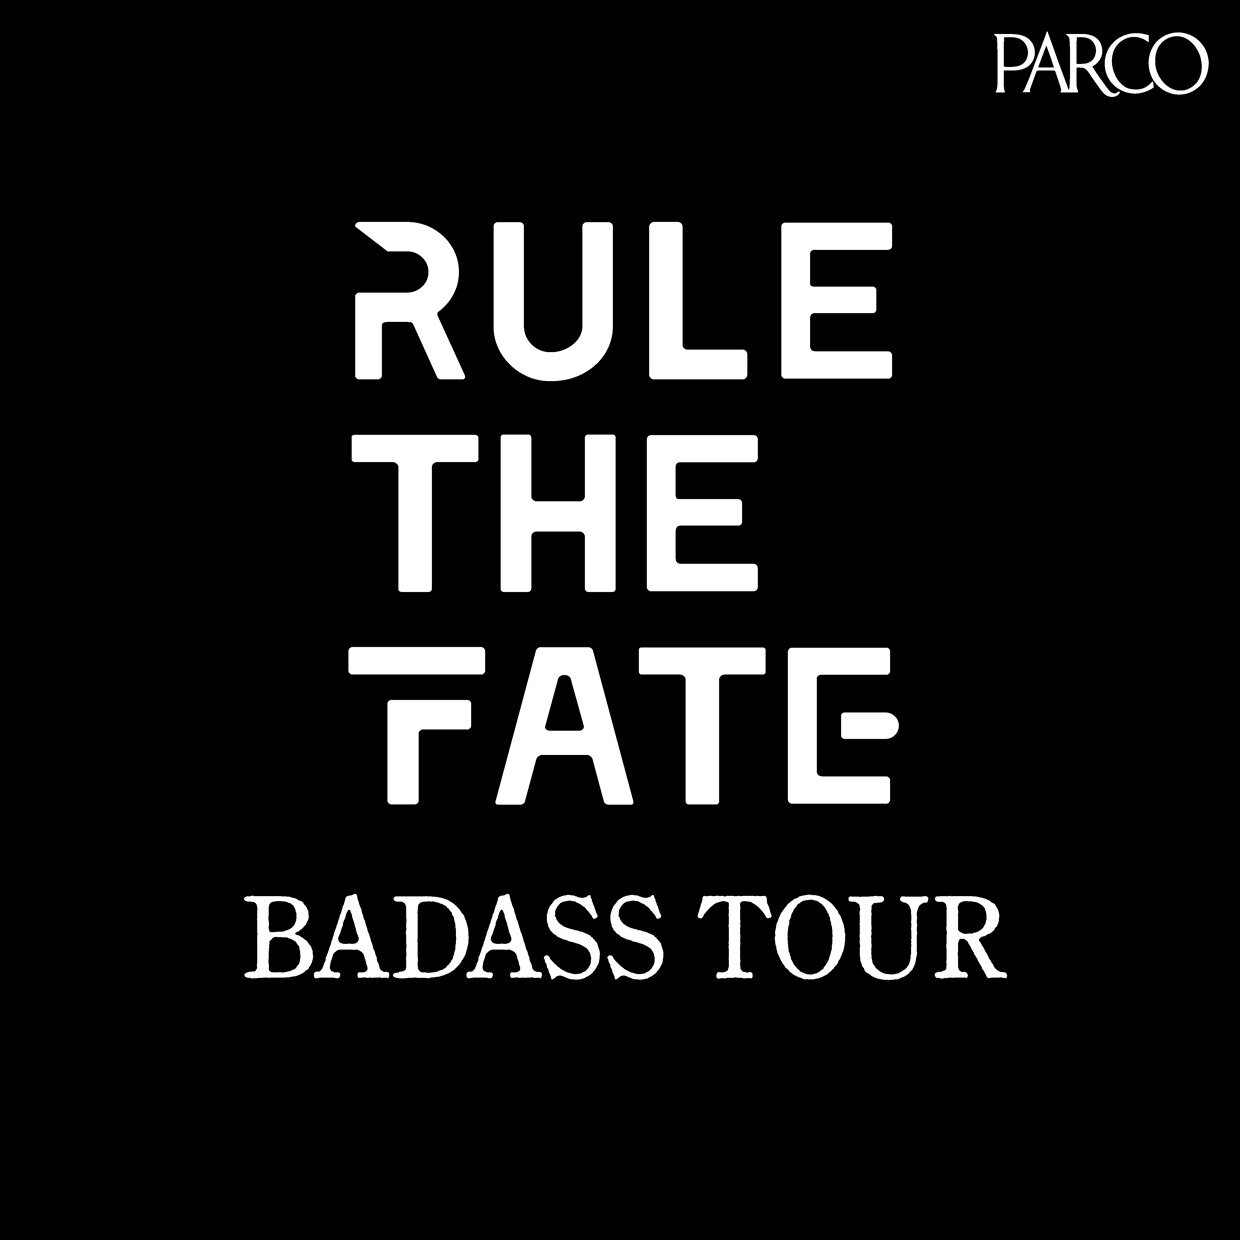 MY FIRST STORY Hiroのクリエイティブディレクターブランド「RULE THE FATE」、初ギャラリー『RULE THE FATE BADASS TOUR』を開催